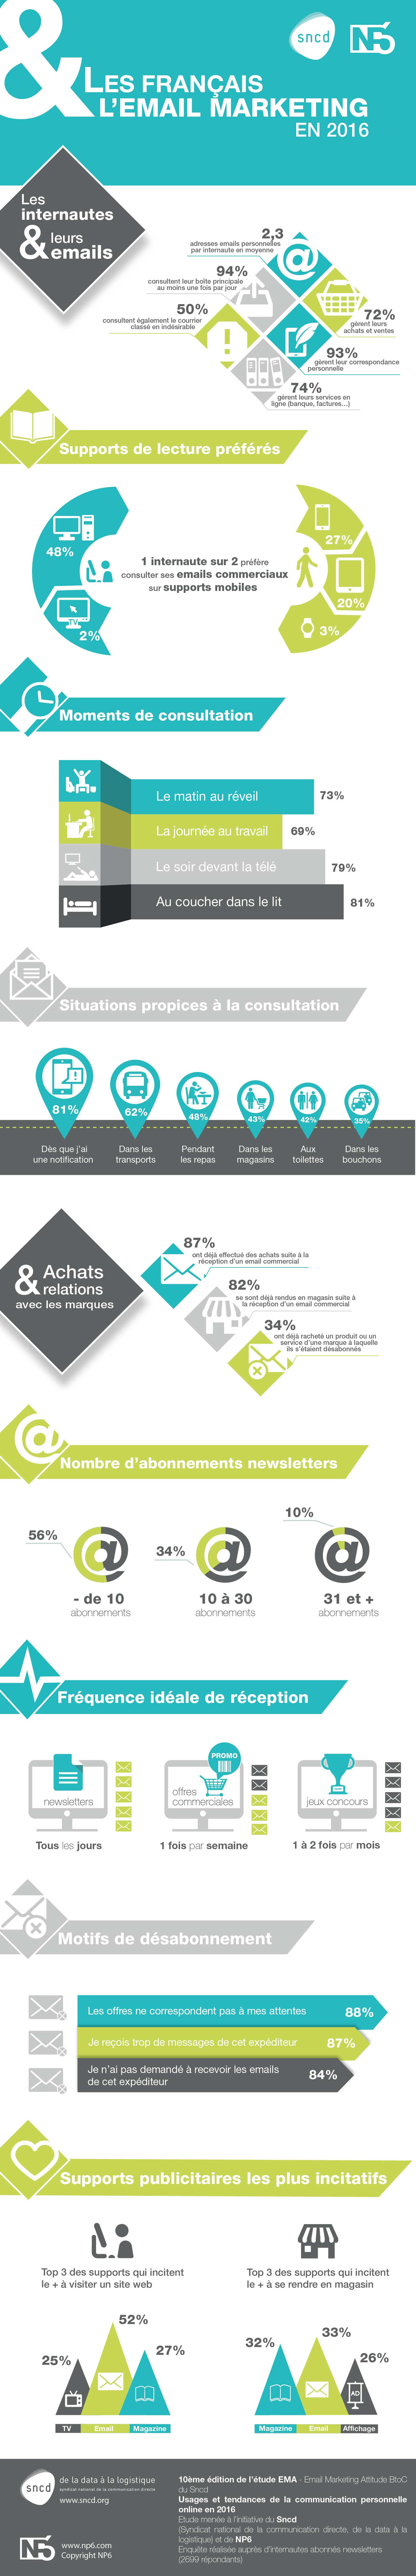 infographie  sur l'email marketing en france en 2016